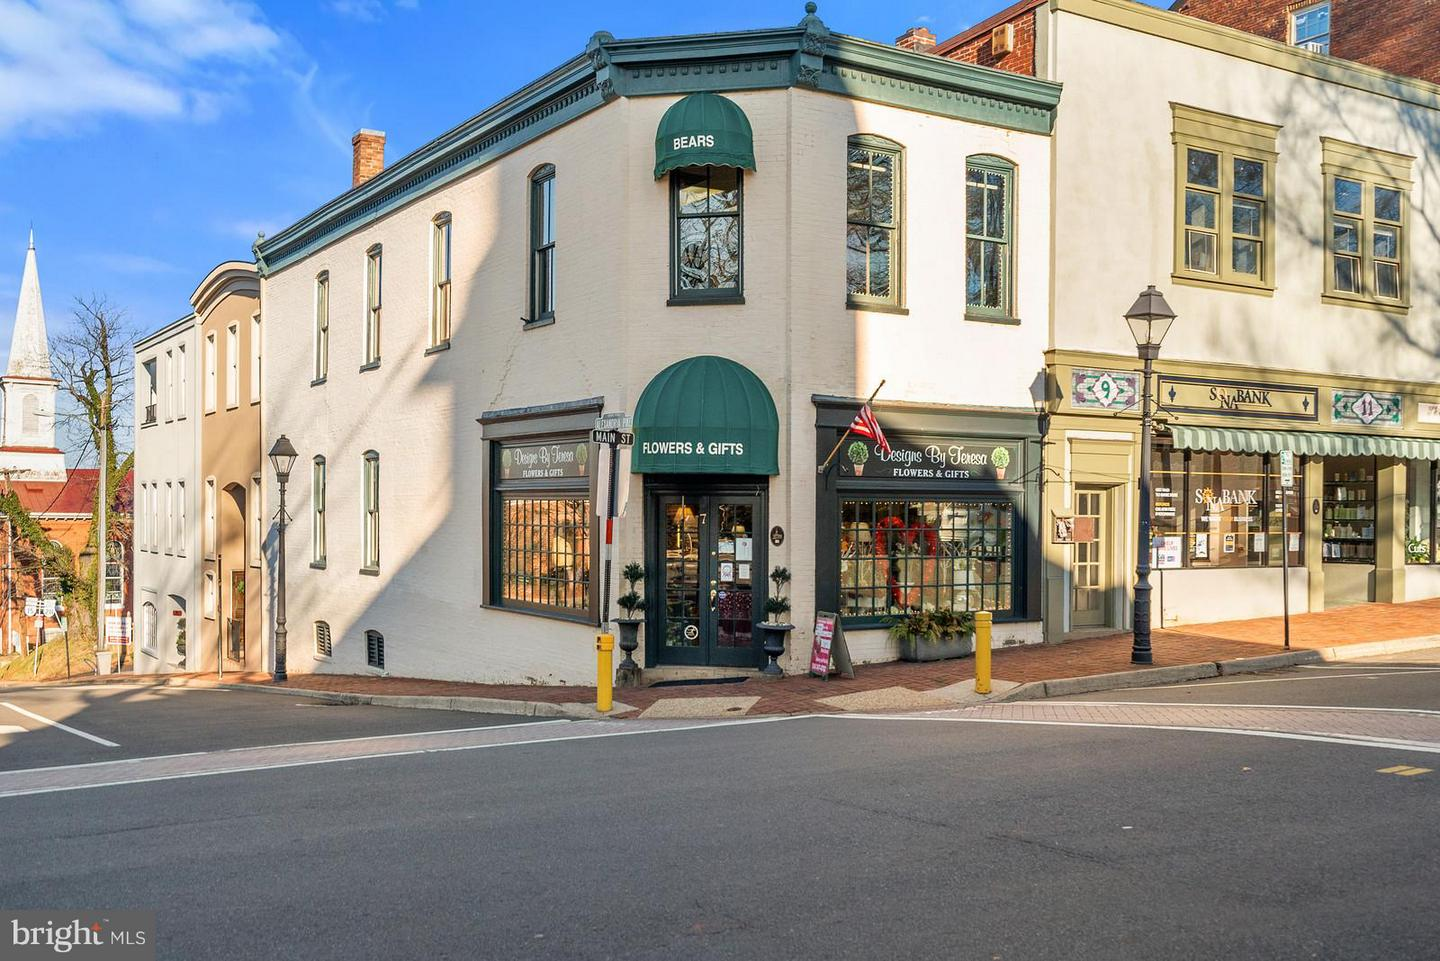 Commercial for Sale at 7 Main St 7 Main St Warrenton, Virginia 20186 United States